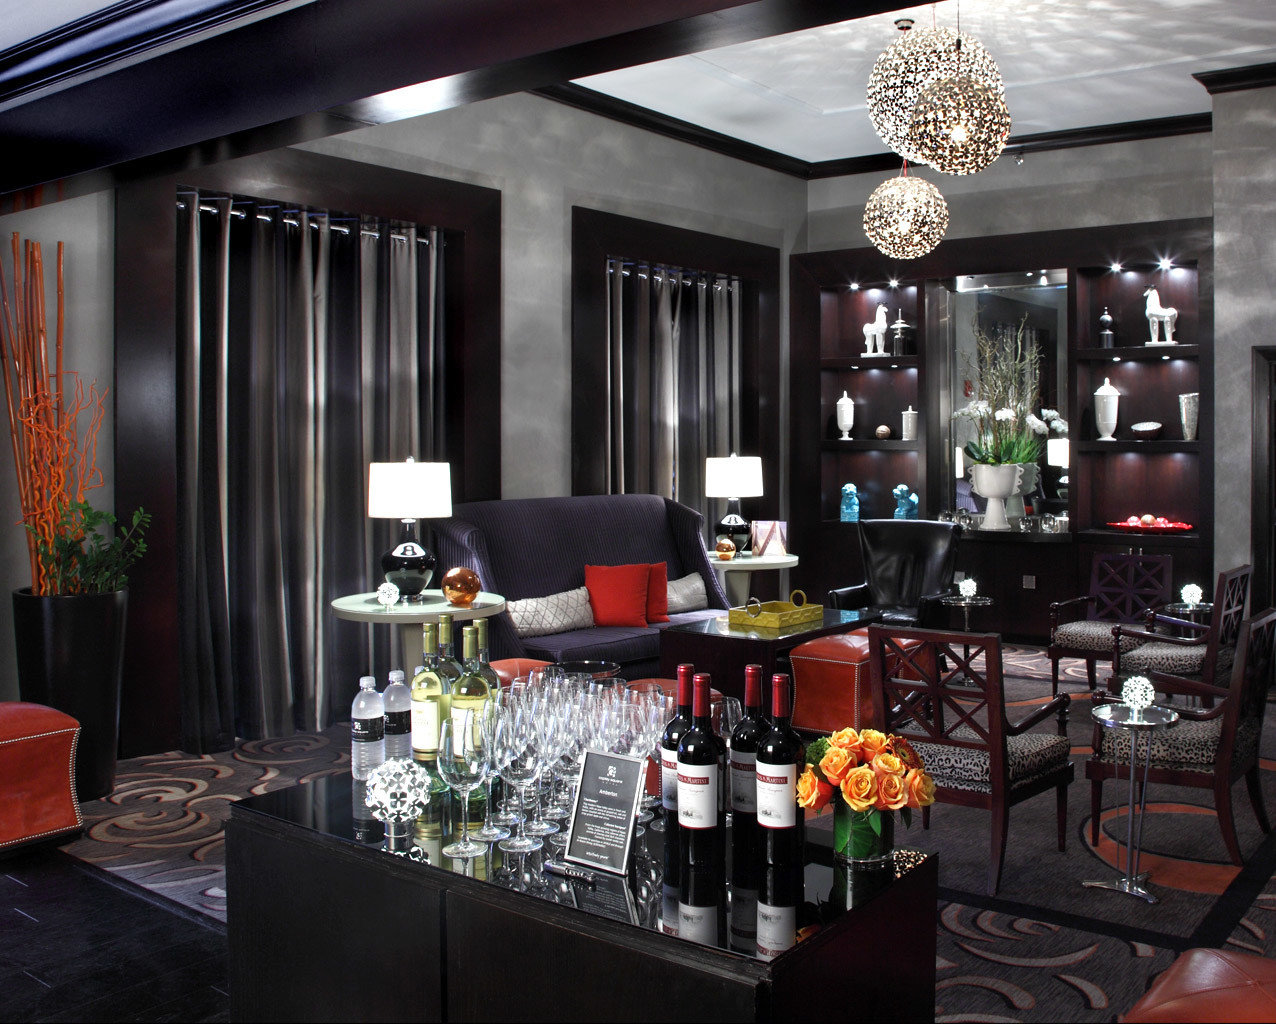 Boutique City Drink Lobby Lounge Modern Dining Bar restaurant floristry living room cluttered dining table